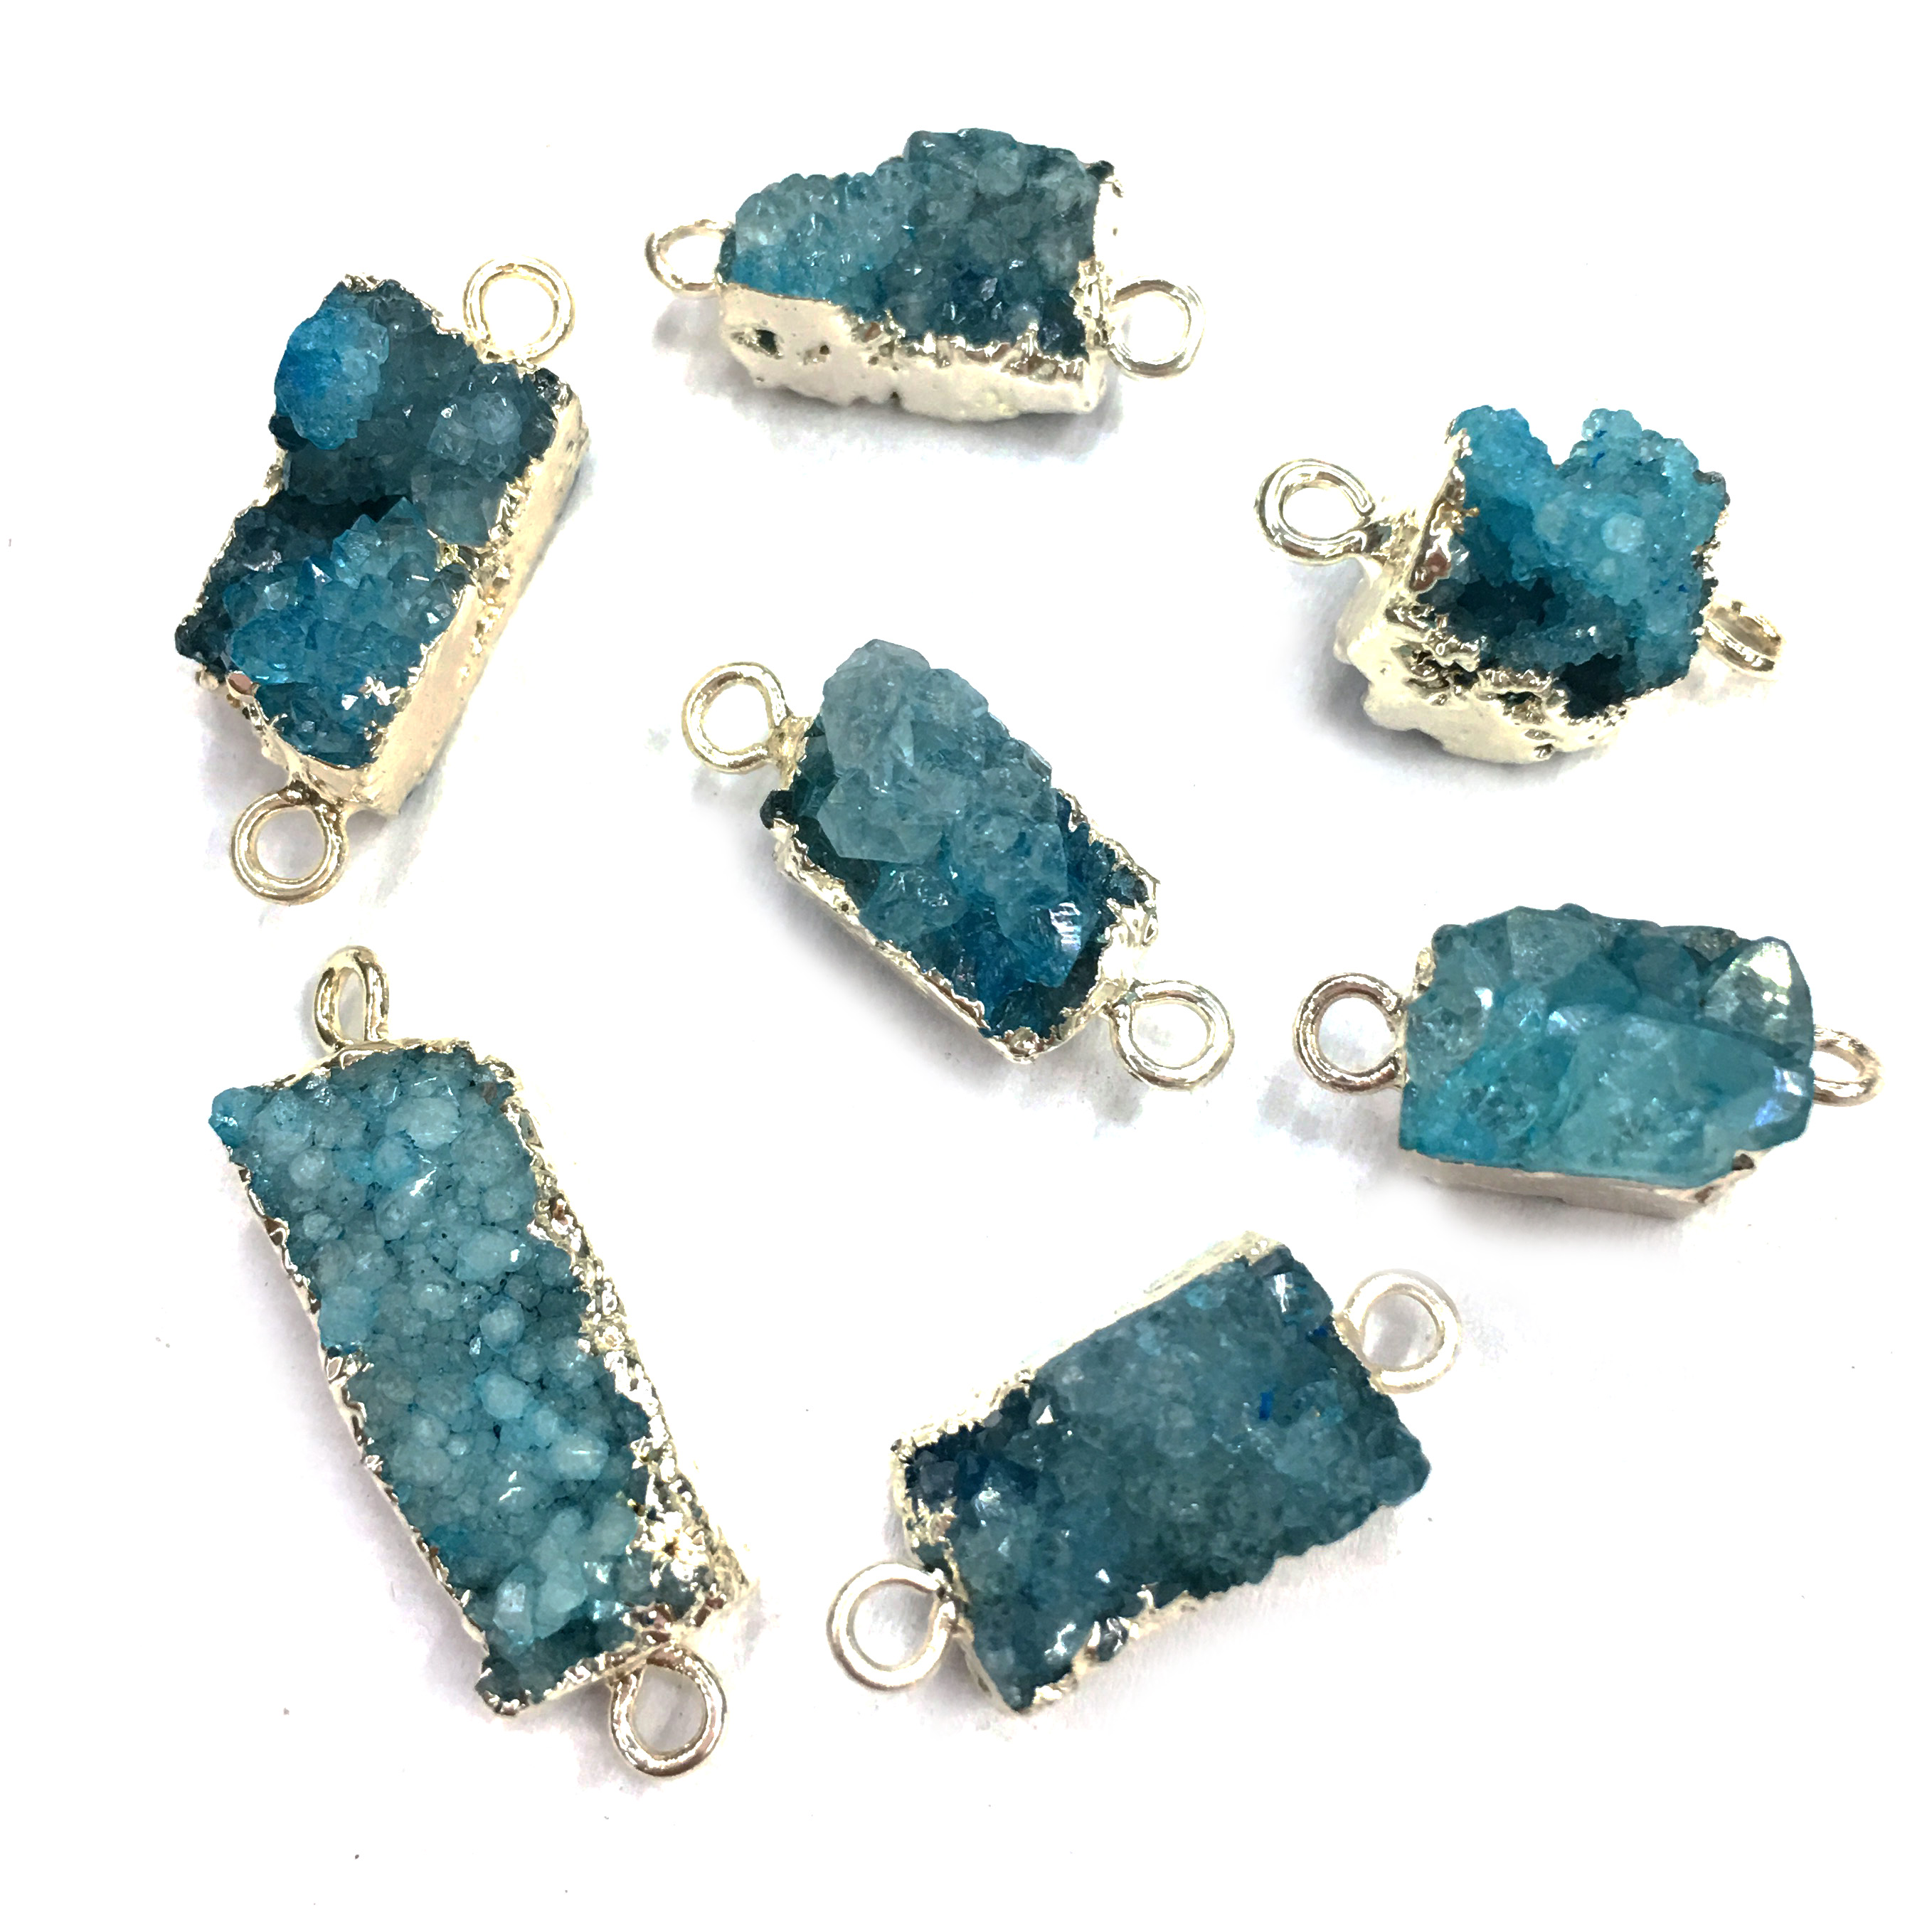 Natural Stone Crystal Pendants Fashion Irregular Shape Double Hole Connector For Jewelry Making DIY Bracelet Necklace Accessorie